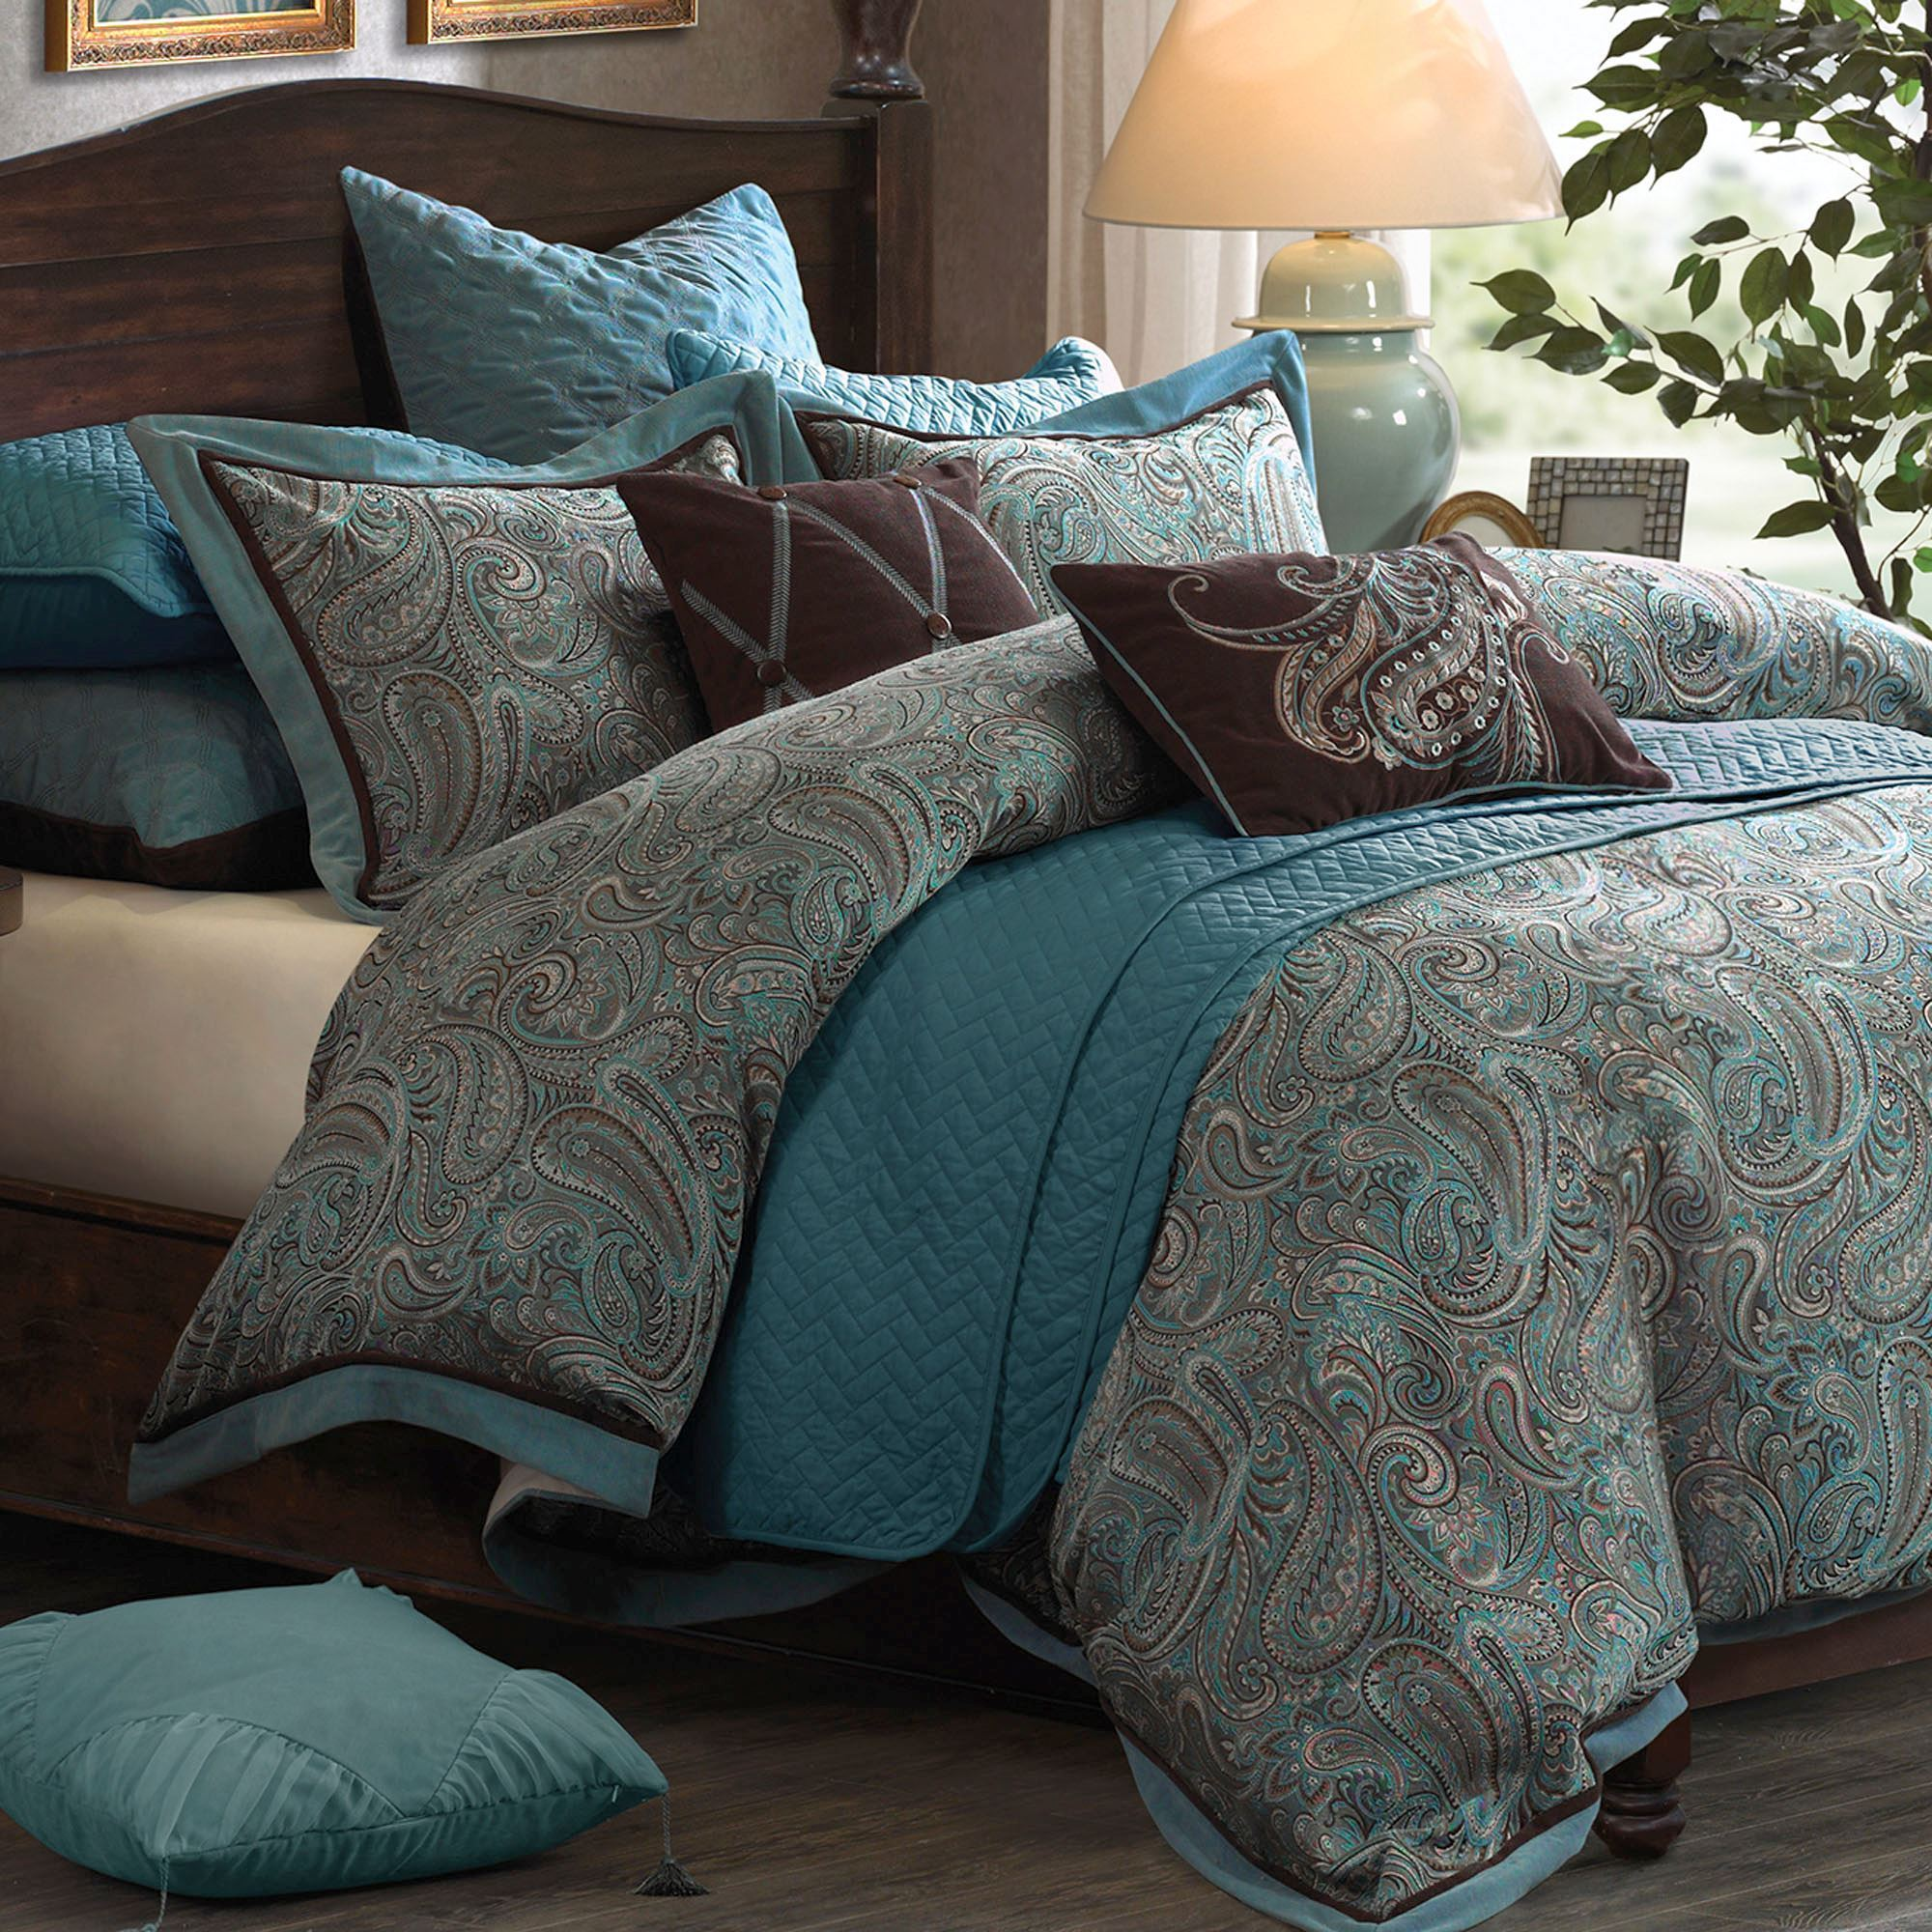 sham boho for set paisley ideas size bedding cover duvet barrel black unique decoration and ikea covers euro tremendous bedroom duvets sets sized crate king